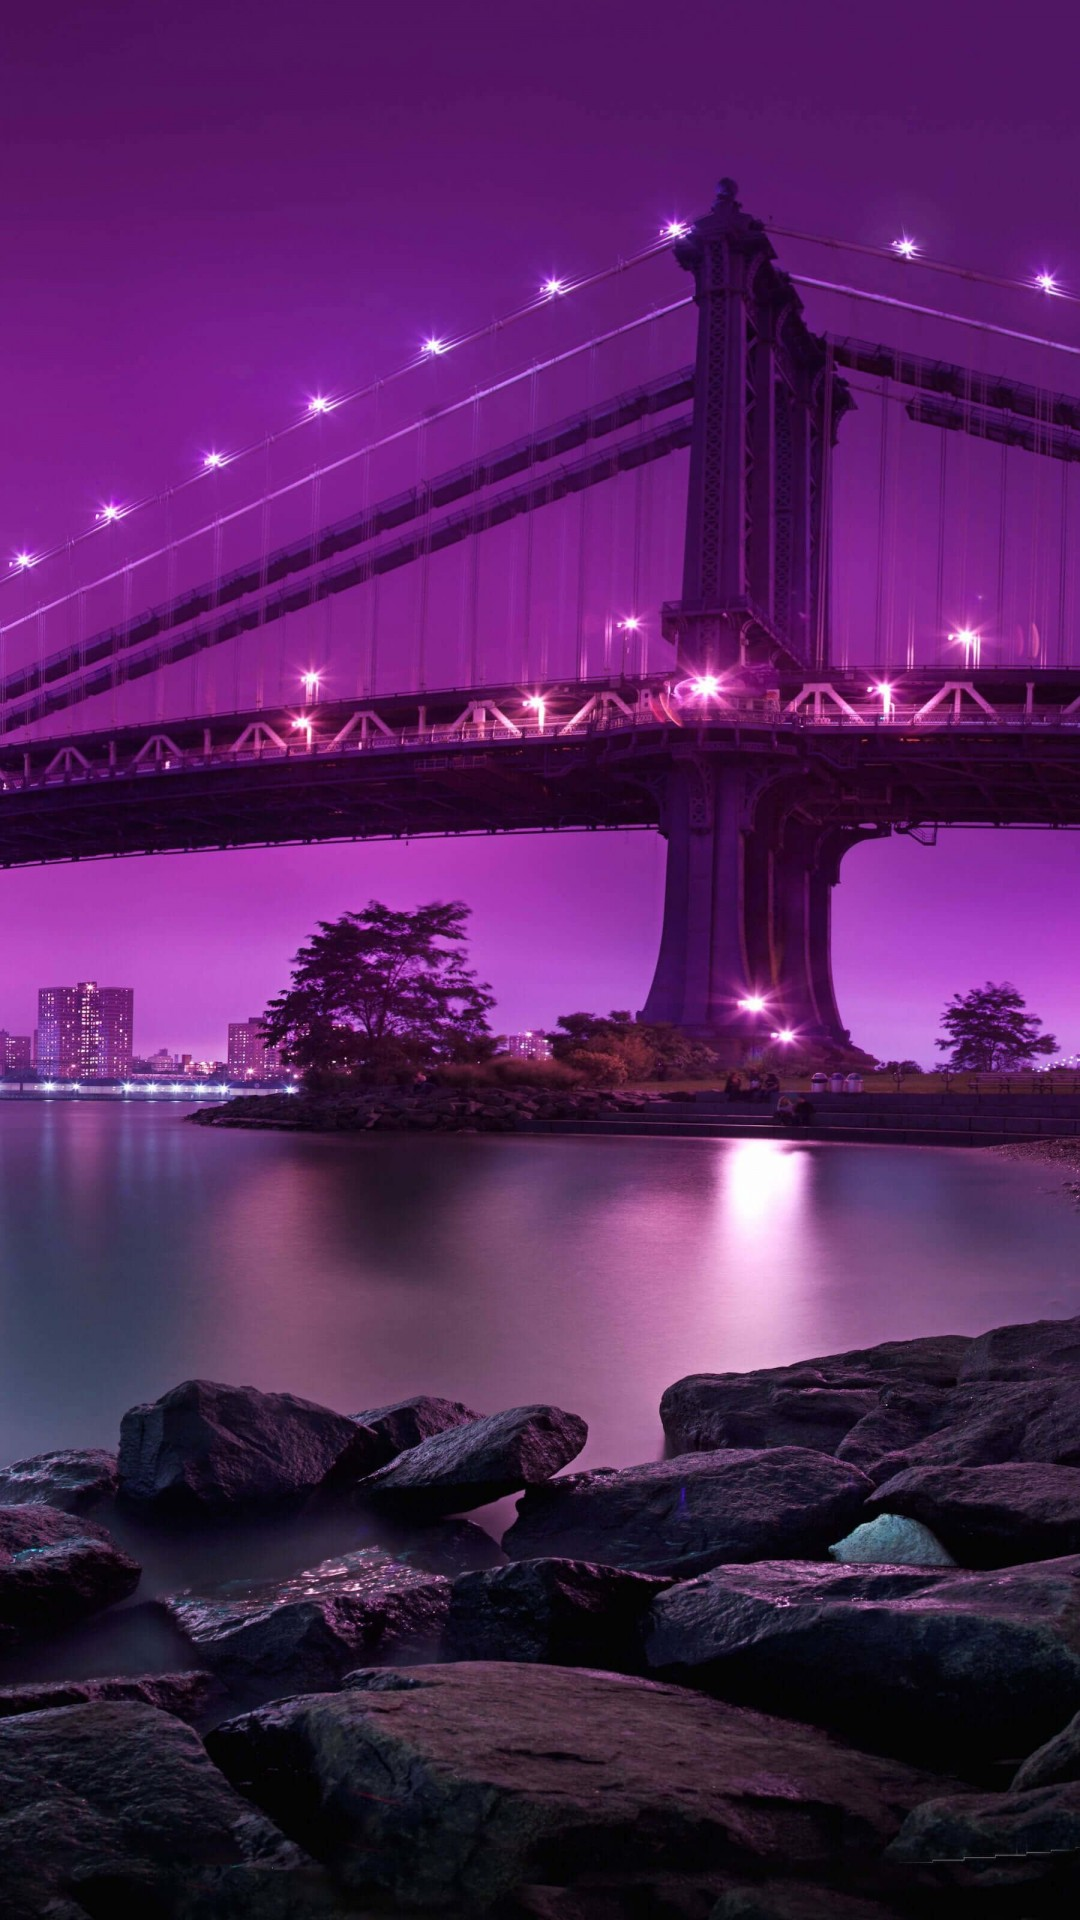 Brooklyn Bridge by night Wallpaper for Google Nexus 5